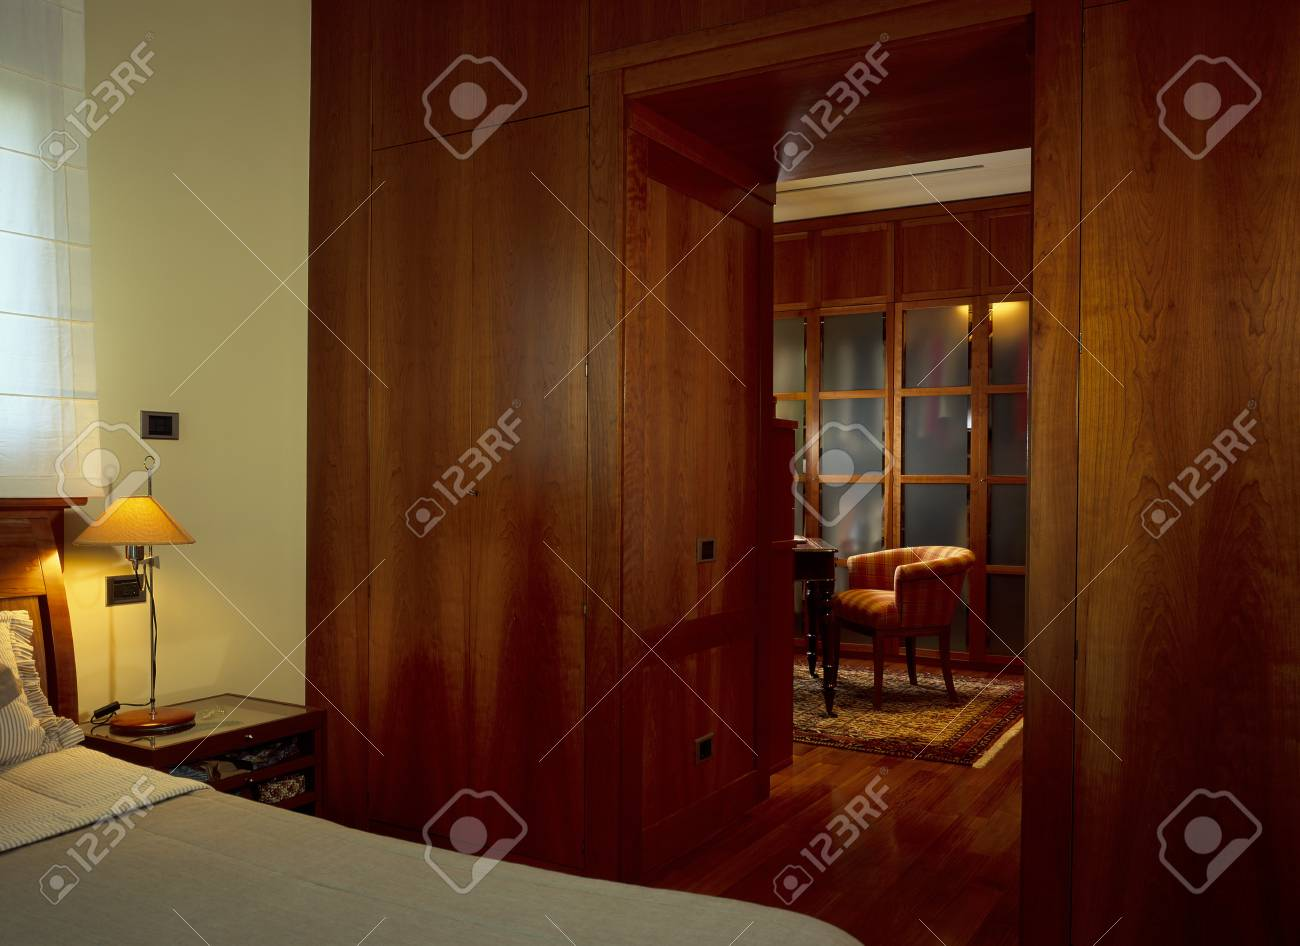 Partial view of a bed in a bedroom Stock Photo - 7215094